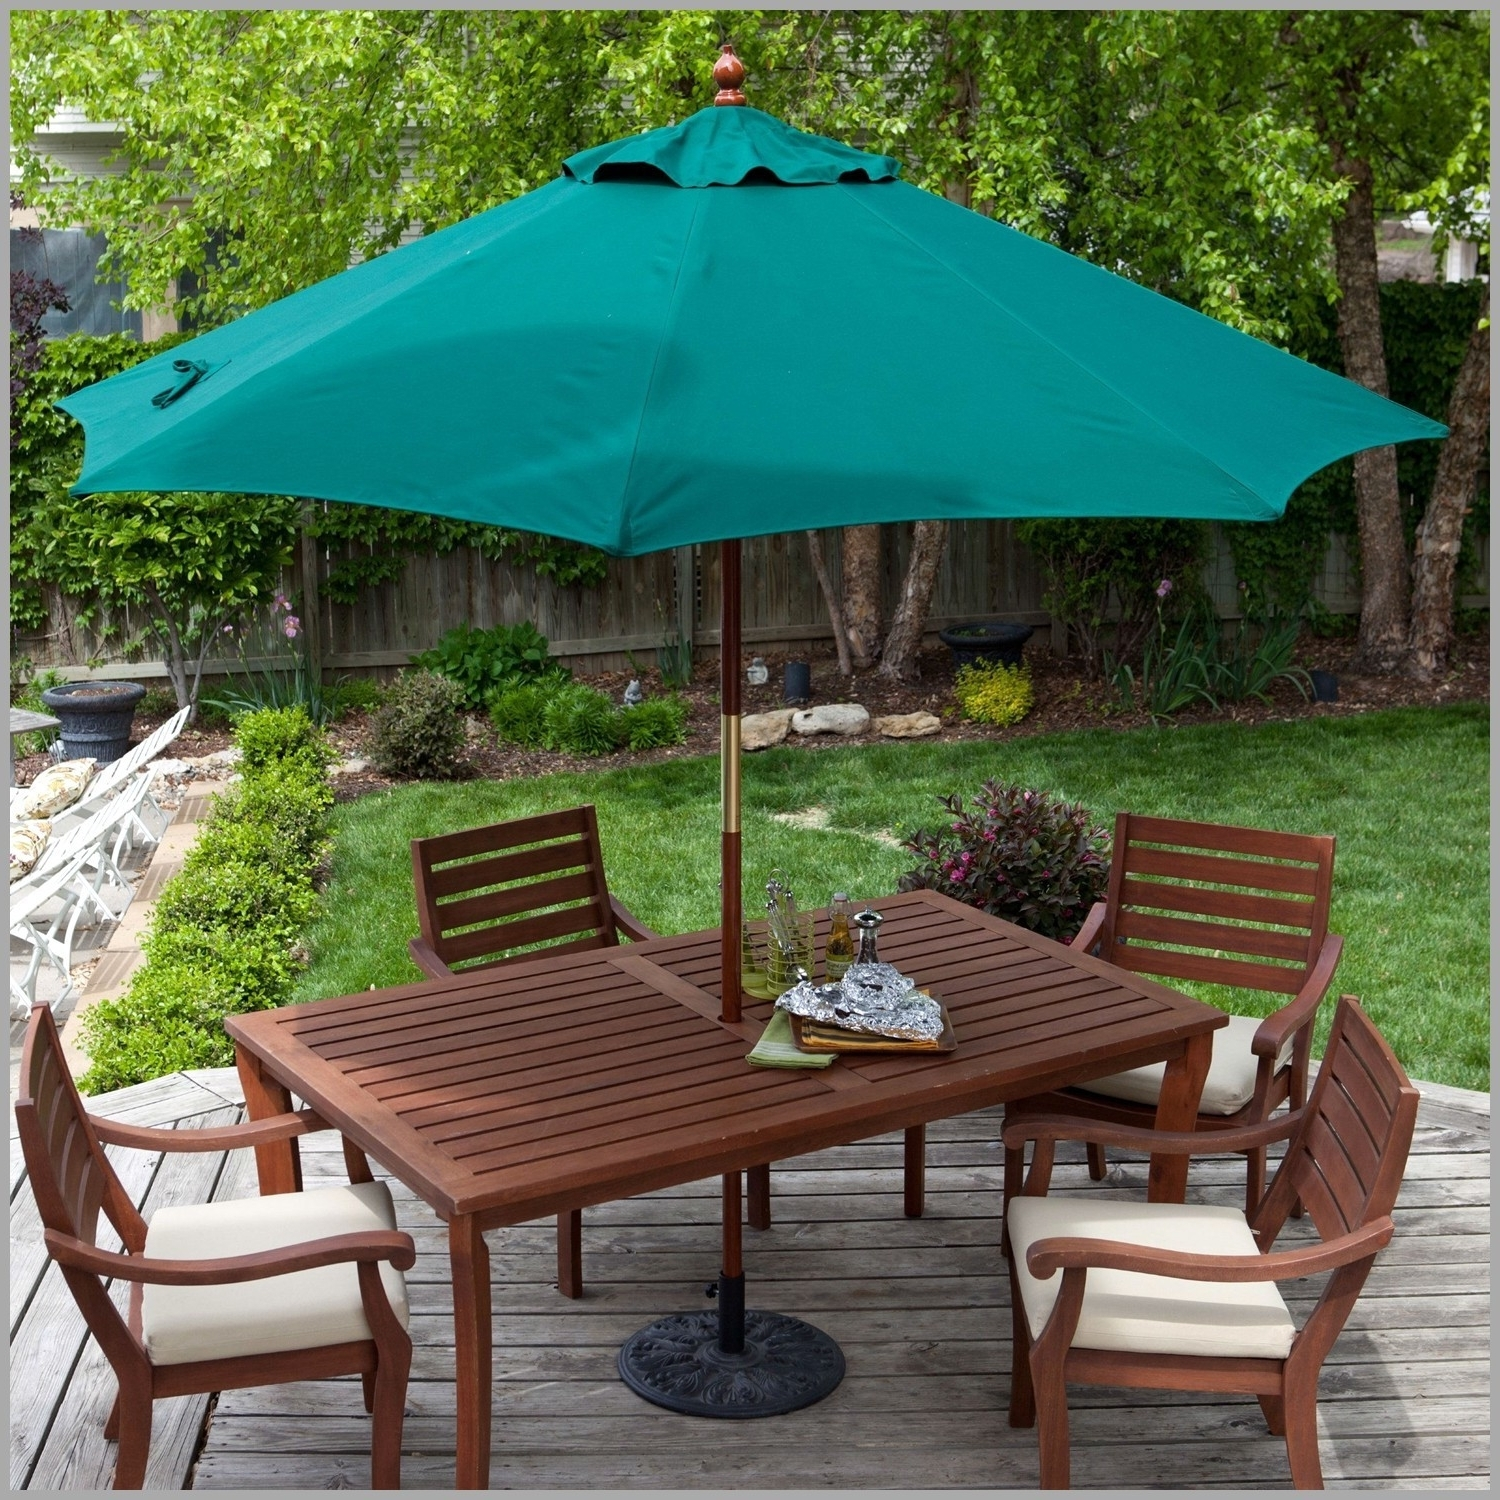 8 Ft Patio Umbrella Best Of Cheap Patio Umbrellas Luxury Have To For Well Known Cheap Patio Umbrellas (View 4 of 20)